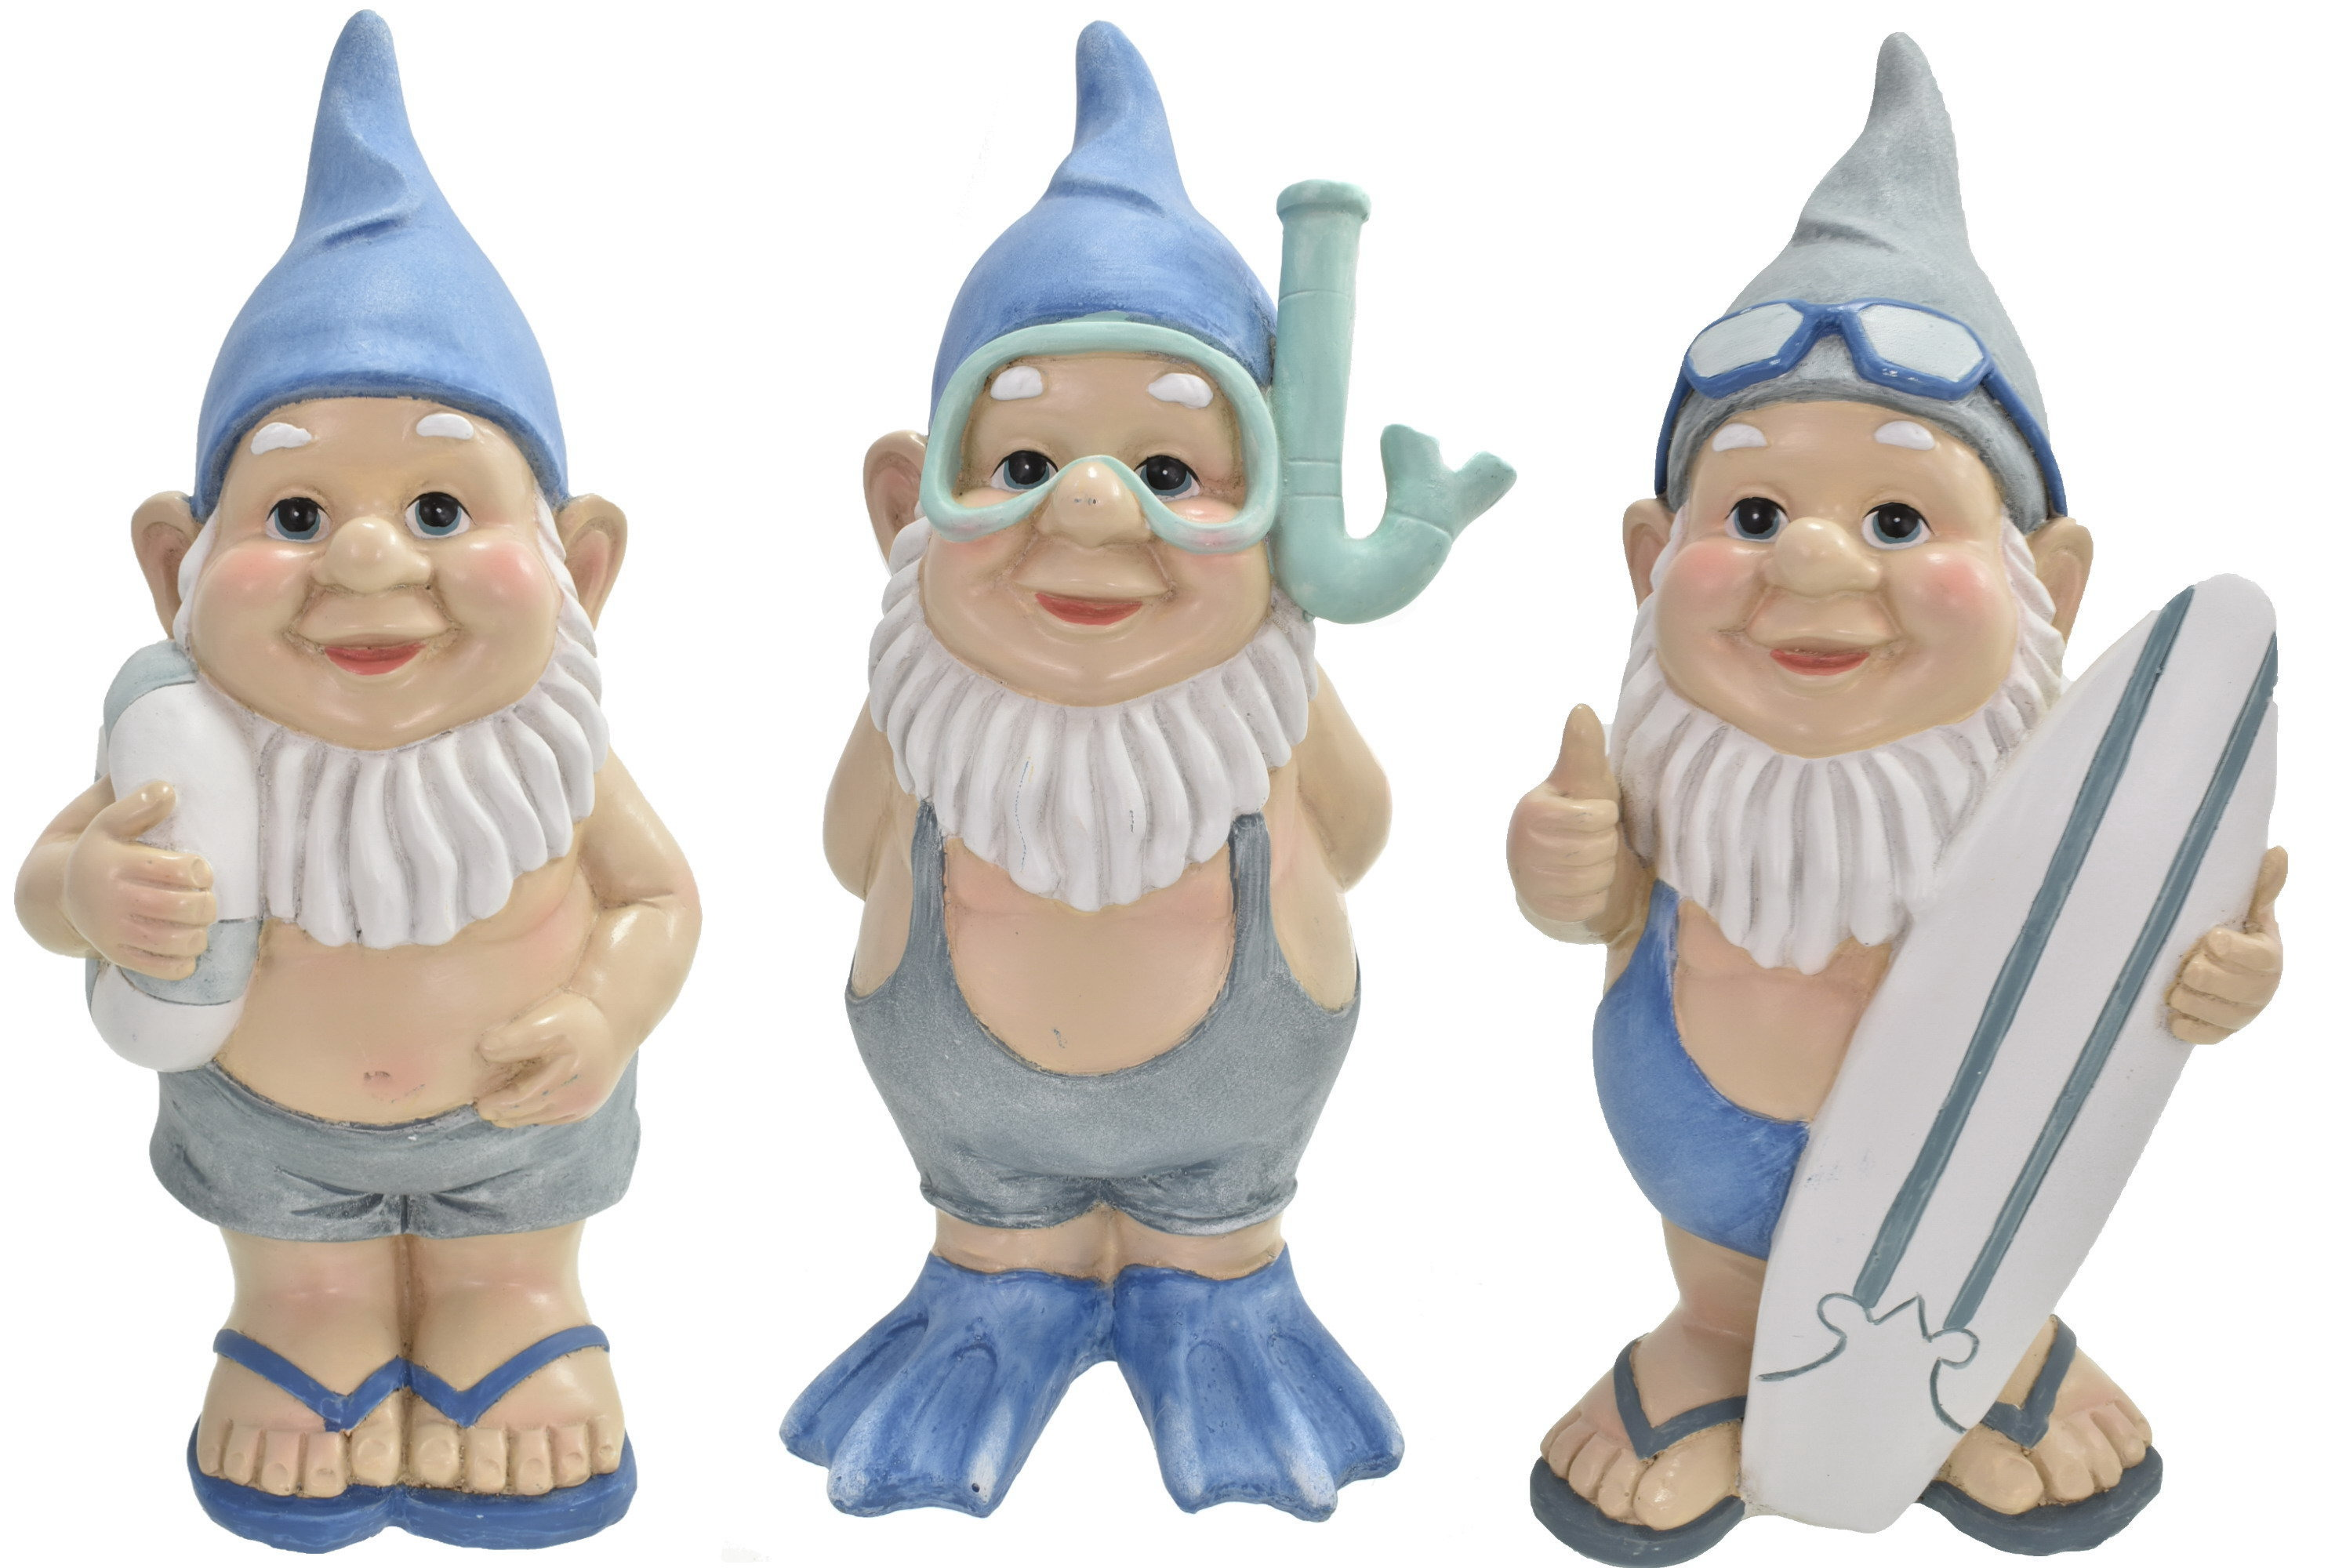 22.5cm Gnautical Beach Gnome 3 Assorted Designs